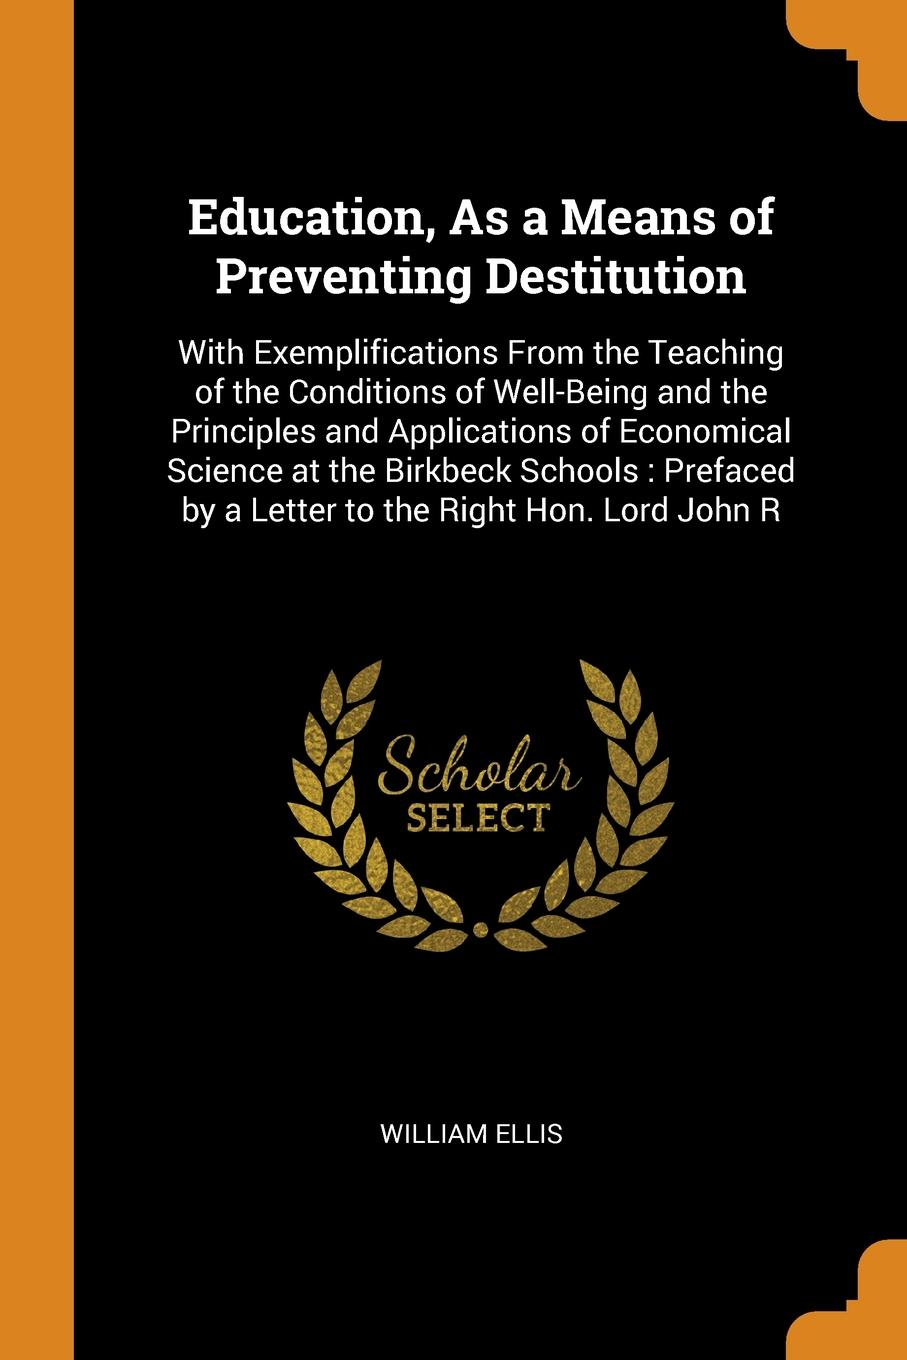 Education, As a Means of Preventing Destitution. With Exemplifications From the Teaching of the Conditions of Well-Being and the Principles and Applications of Economical Science at the Birkbeck Schools : Prefaced by a Letter to the Right Hon. Lor...